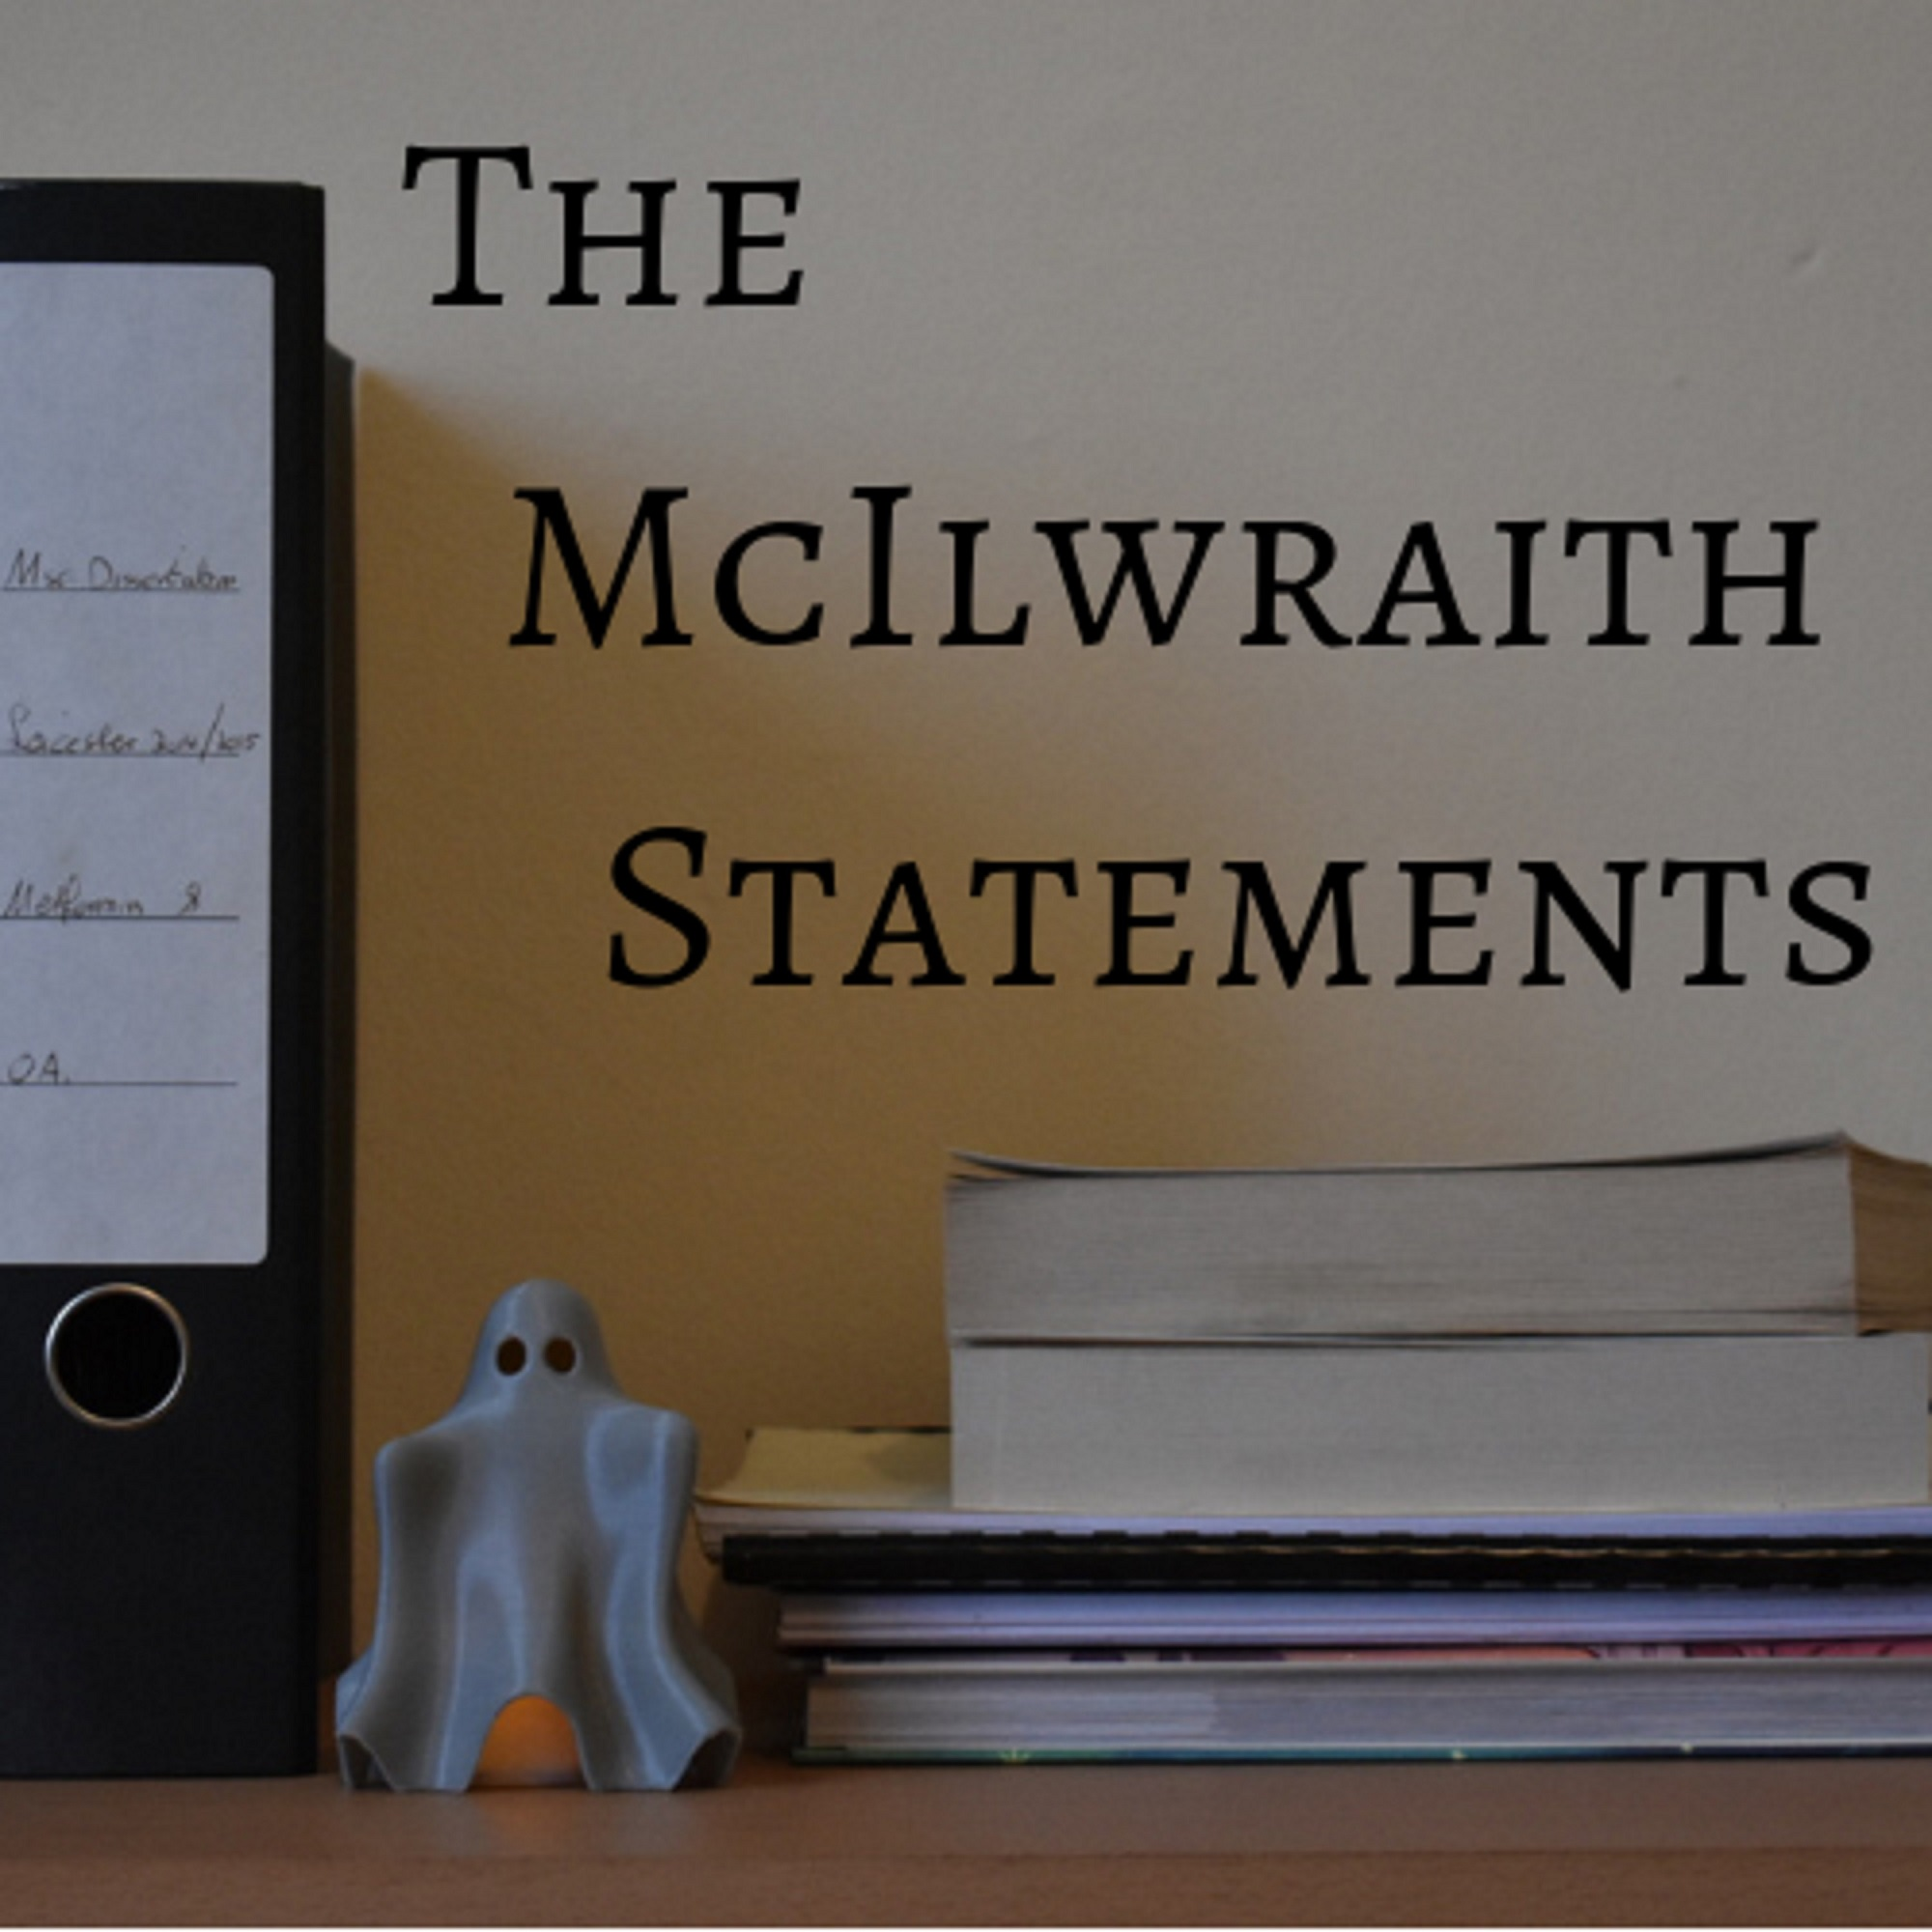 The McIlwraith Statements